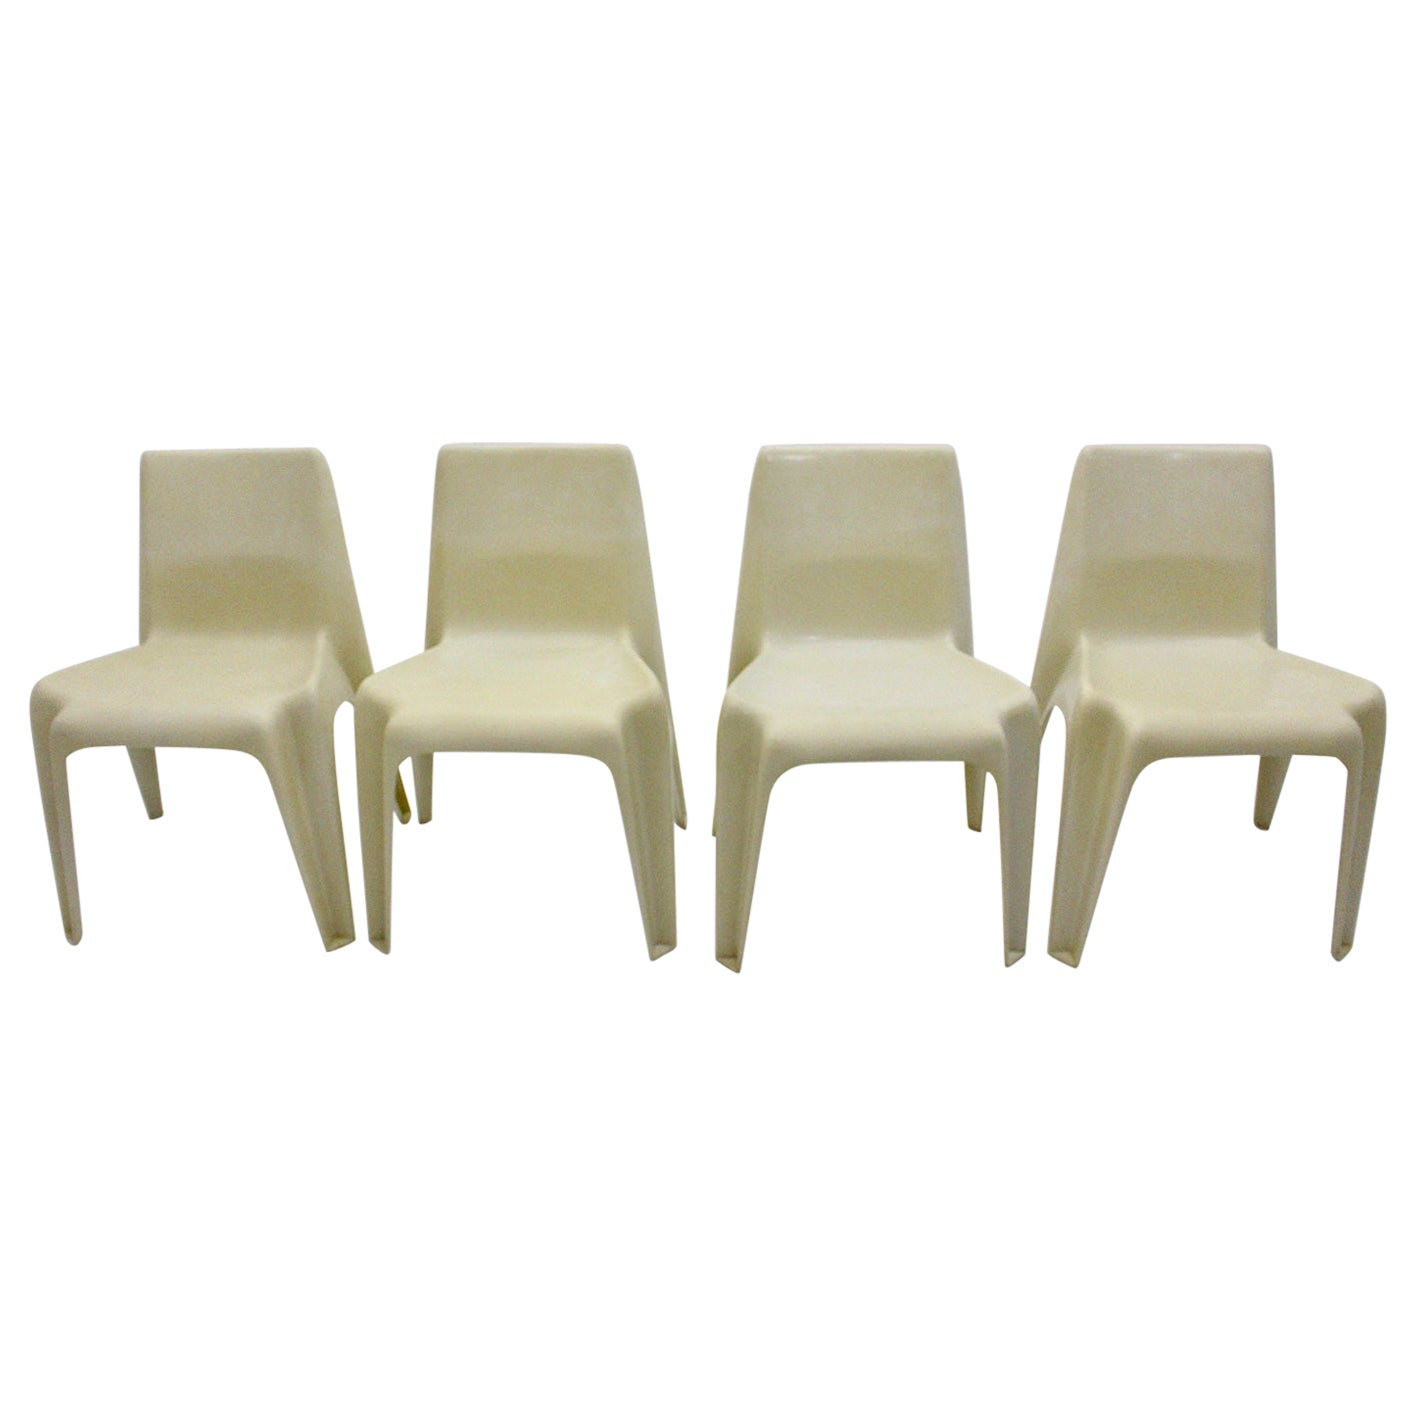 Space Age Vintage White Plastic Four Dining Chairs Helmuth Bätzner 1960s Germany